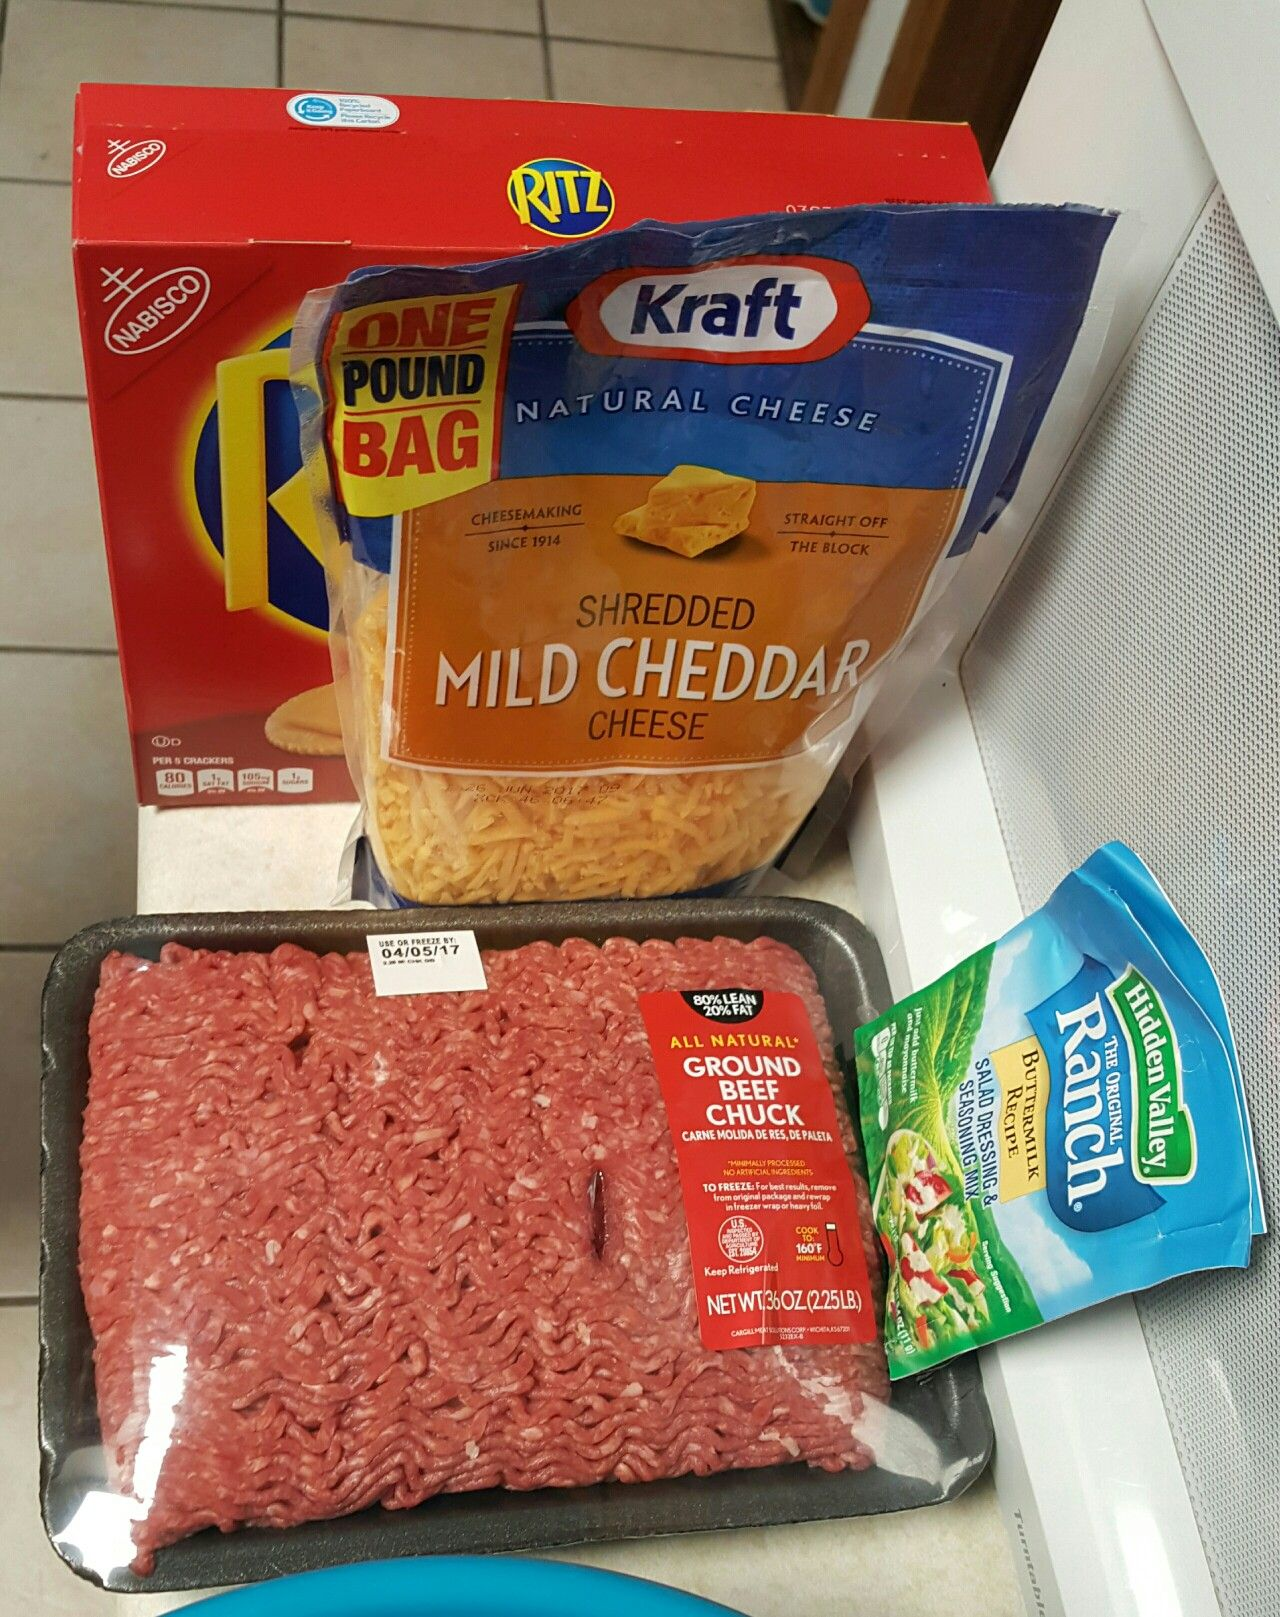 Ranch Cheeseburger Meatloaf 2 Ground Beef Small Bag Shredded Cheddar 2 Packets Of Dry Ranc Cheeseburger Meatloaf Ritz Cracker Recipes Burger Seasoning